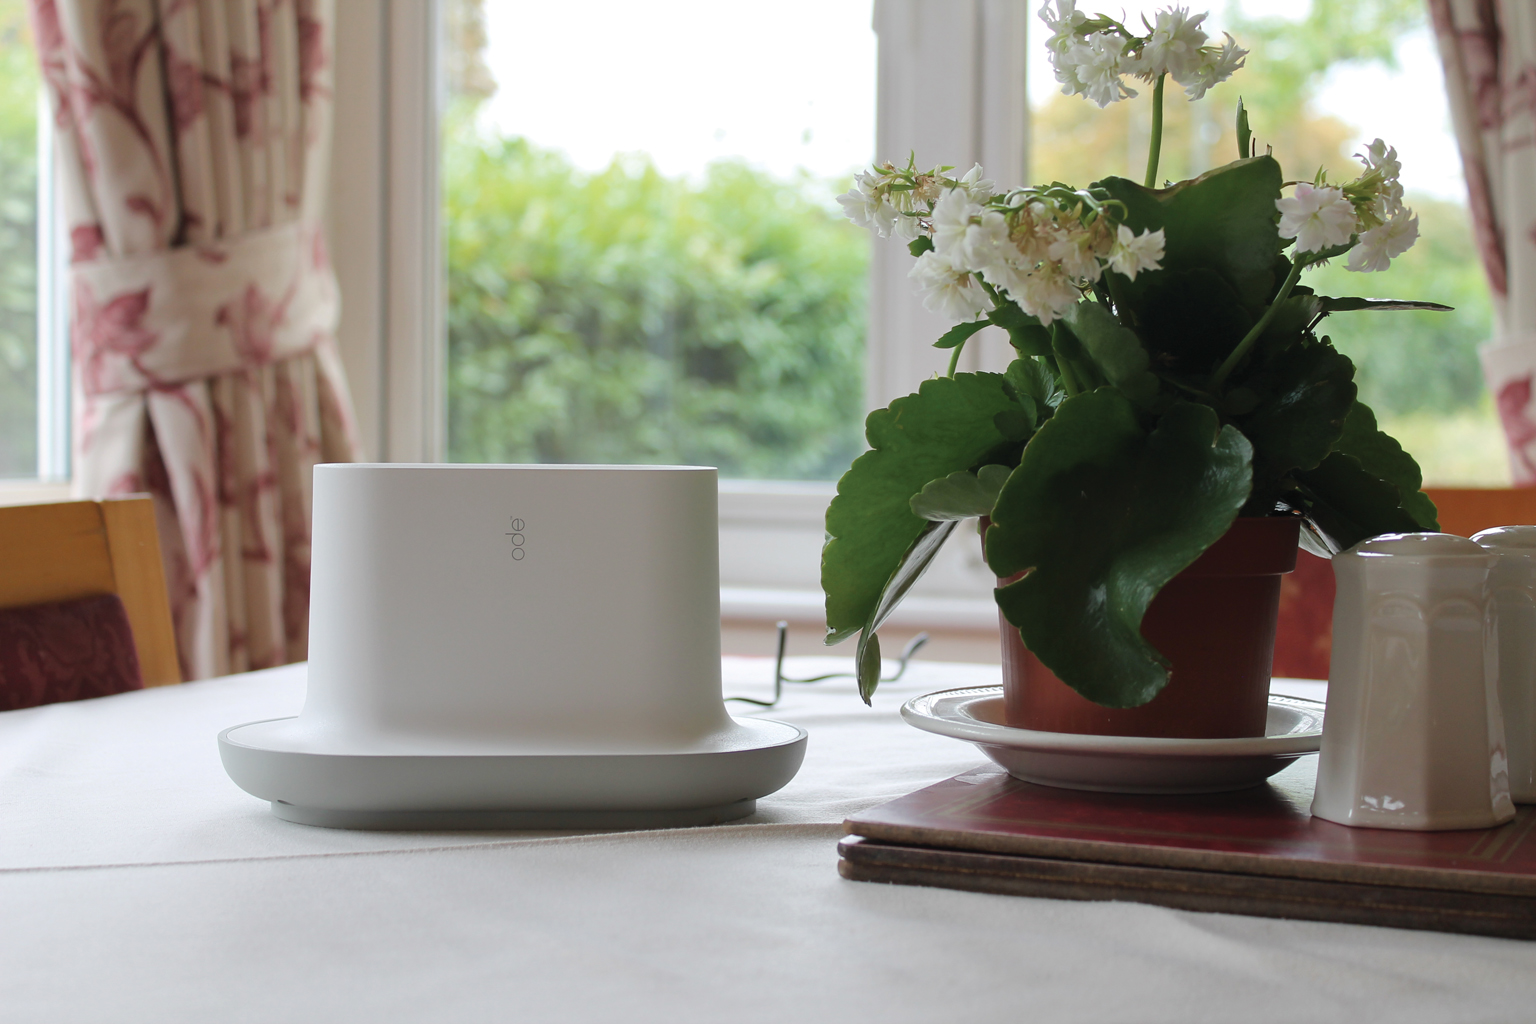 Ode, a device which releases food smells throughout the day to remind people with dementia to eat. In trials, 52% of people who installed the product gained weight (myode.org)